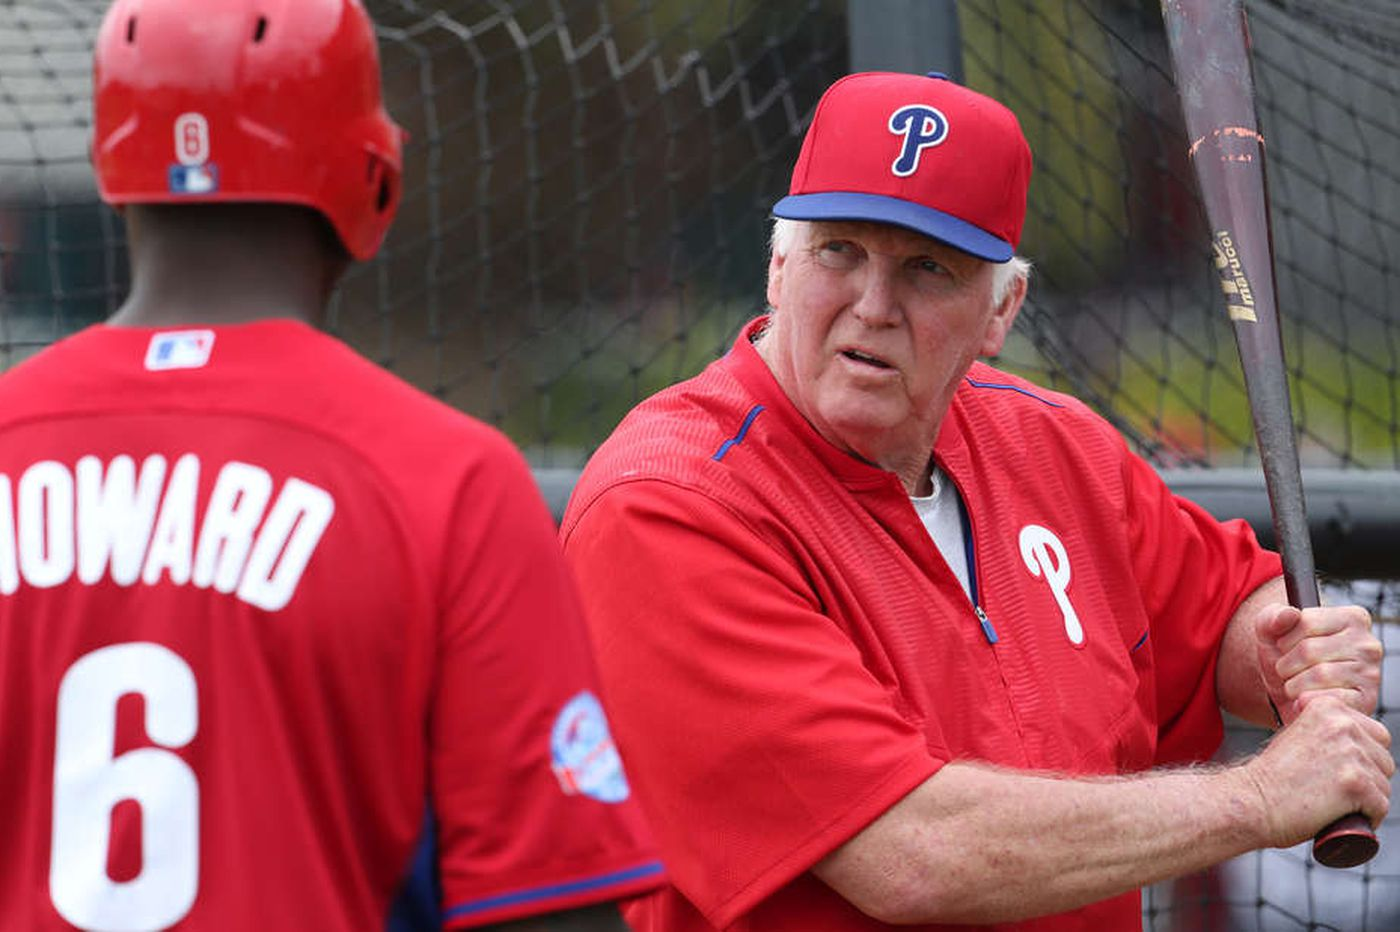 Nobody better than Charlie Manuel to help fix the Phillies' underachieving offense | Analysis